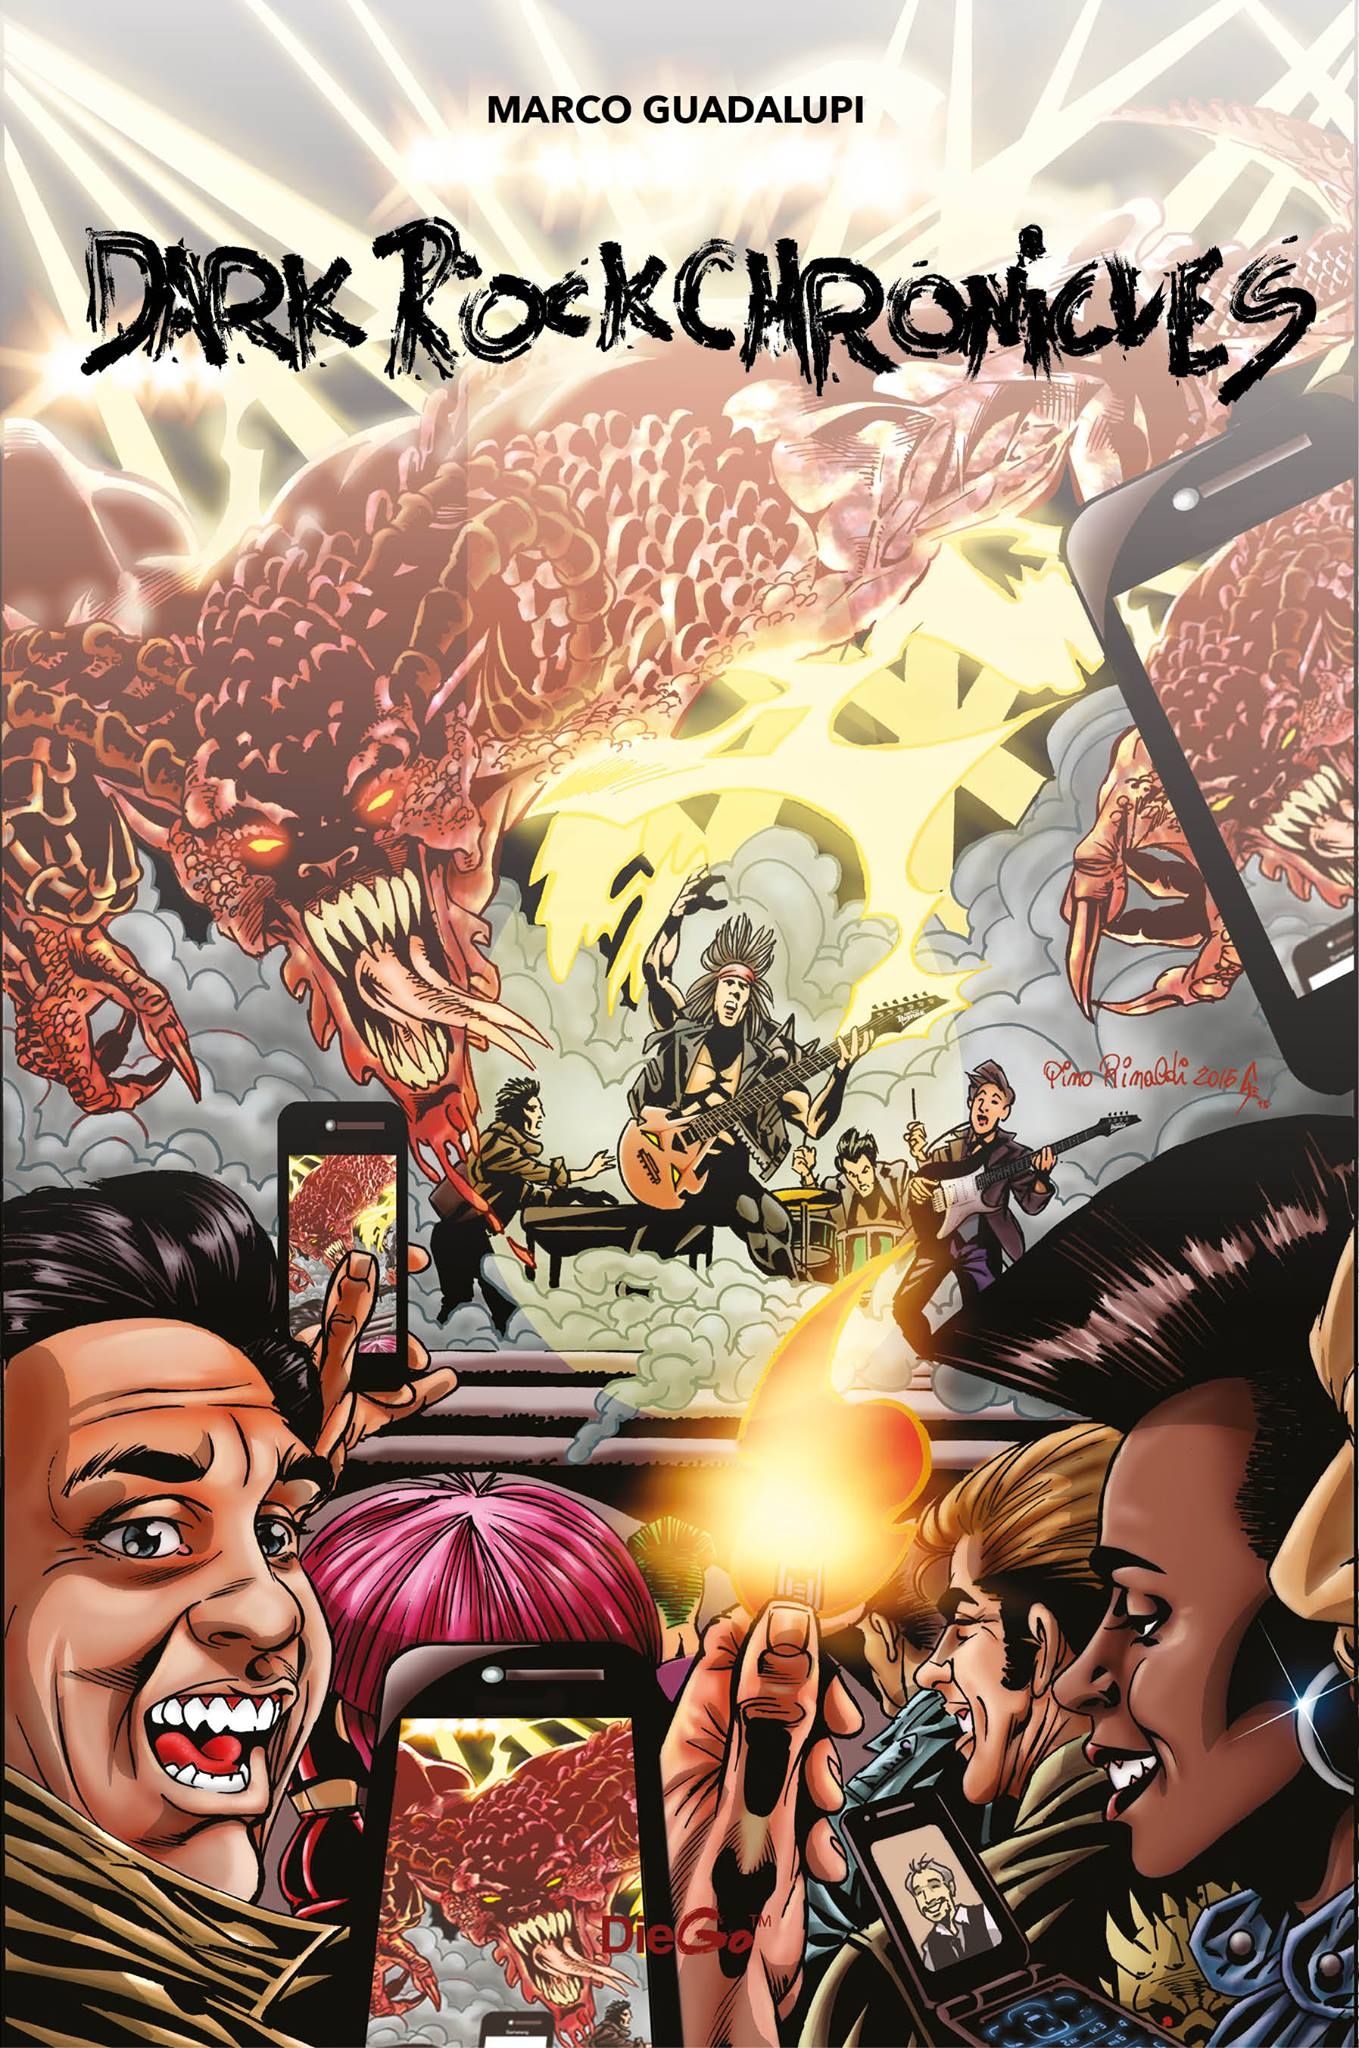 Diego Comics Publishing Presents Dark Rock Chronicles